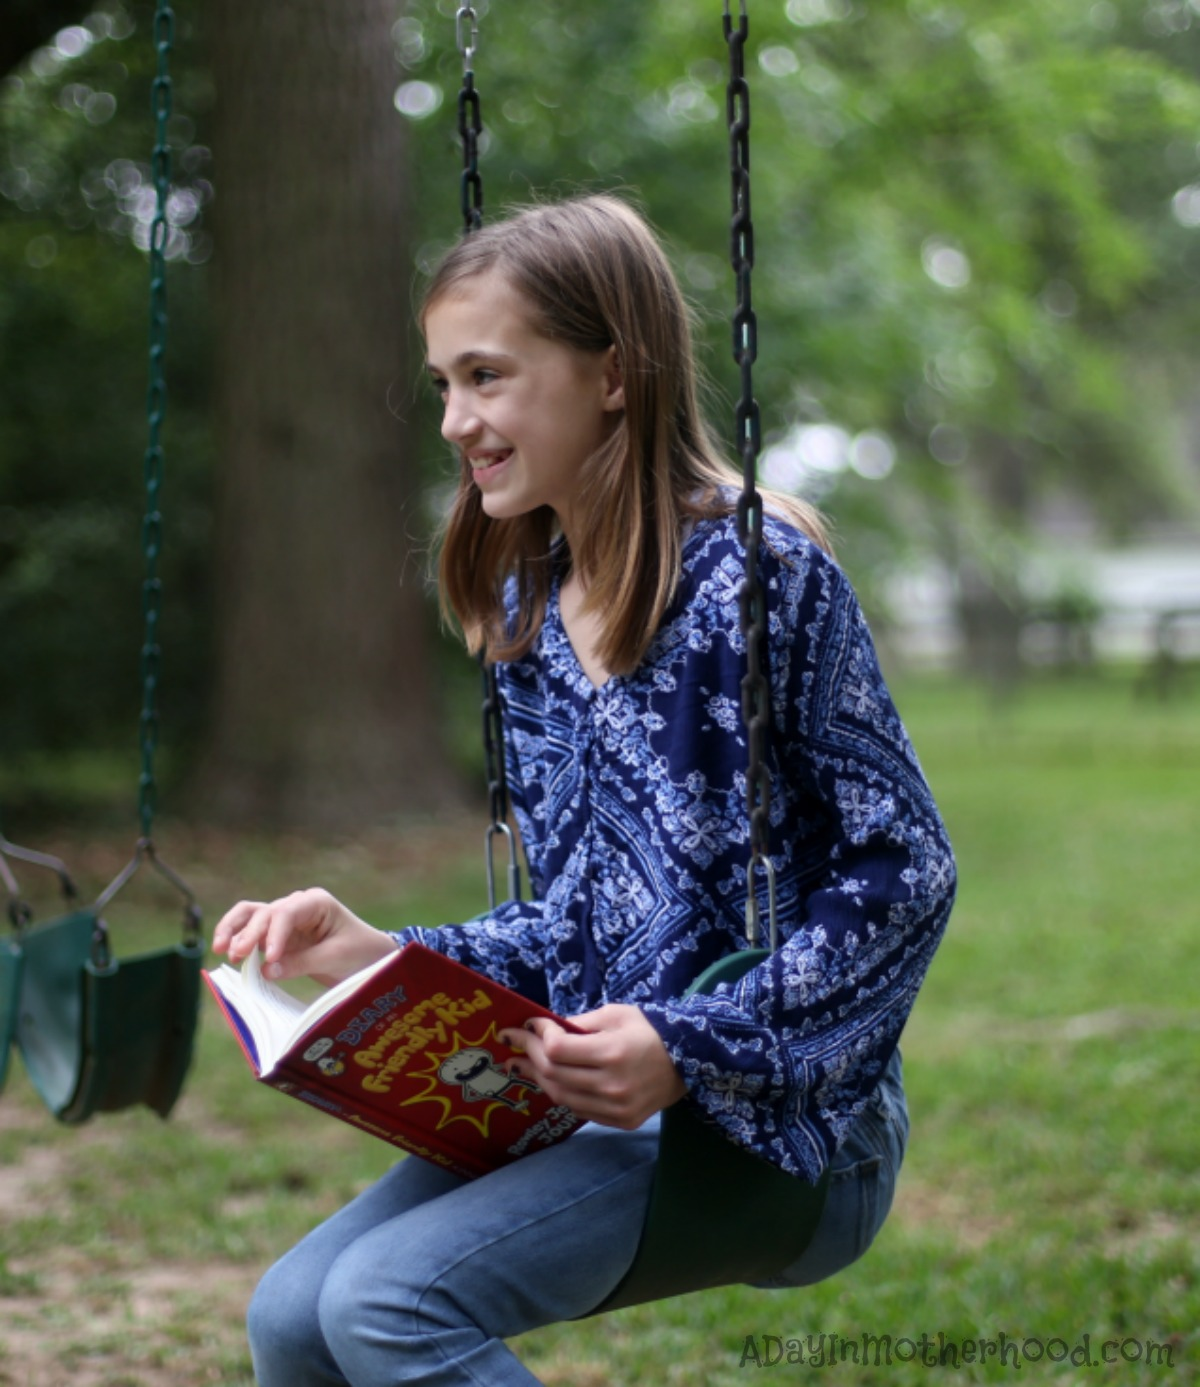 'Diary of an Awesome Friendly Kid' Offers fun Reading for Awesome Kids swinging